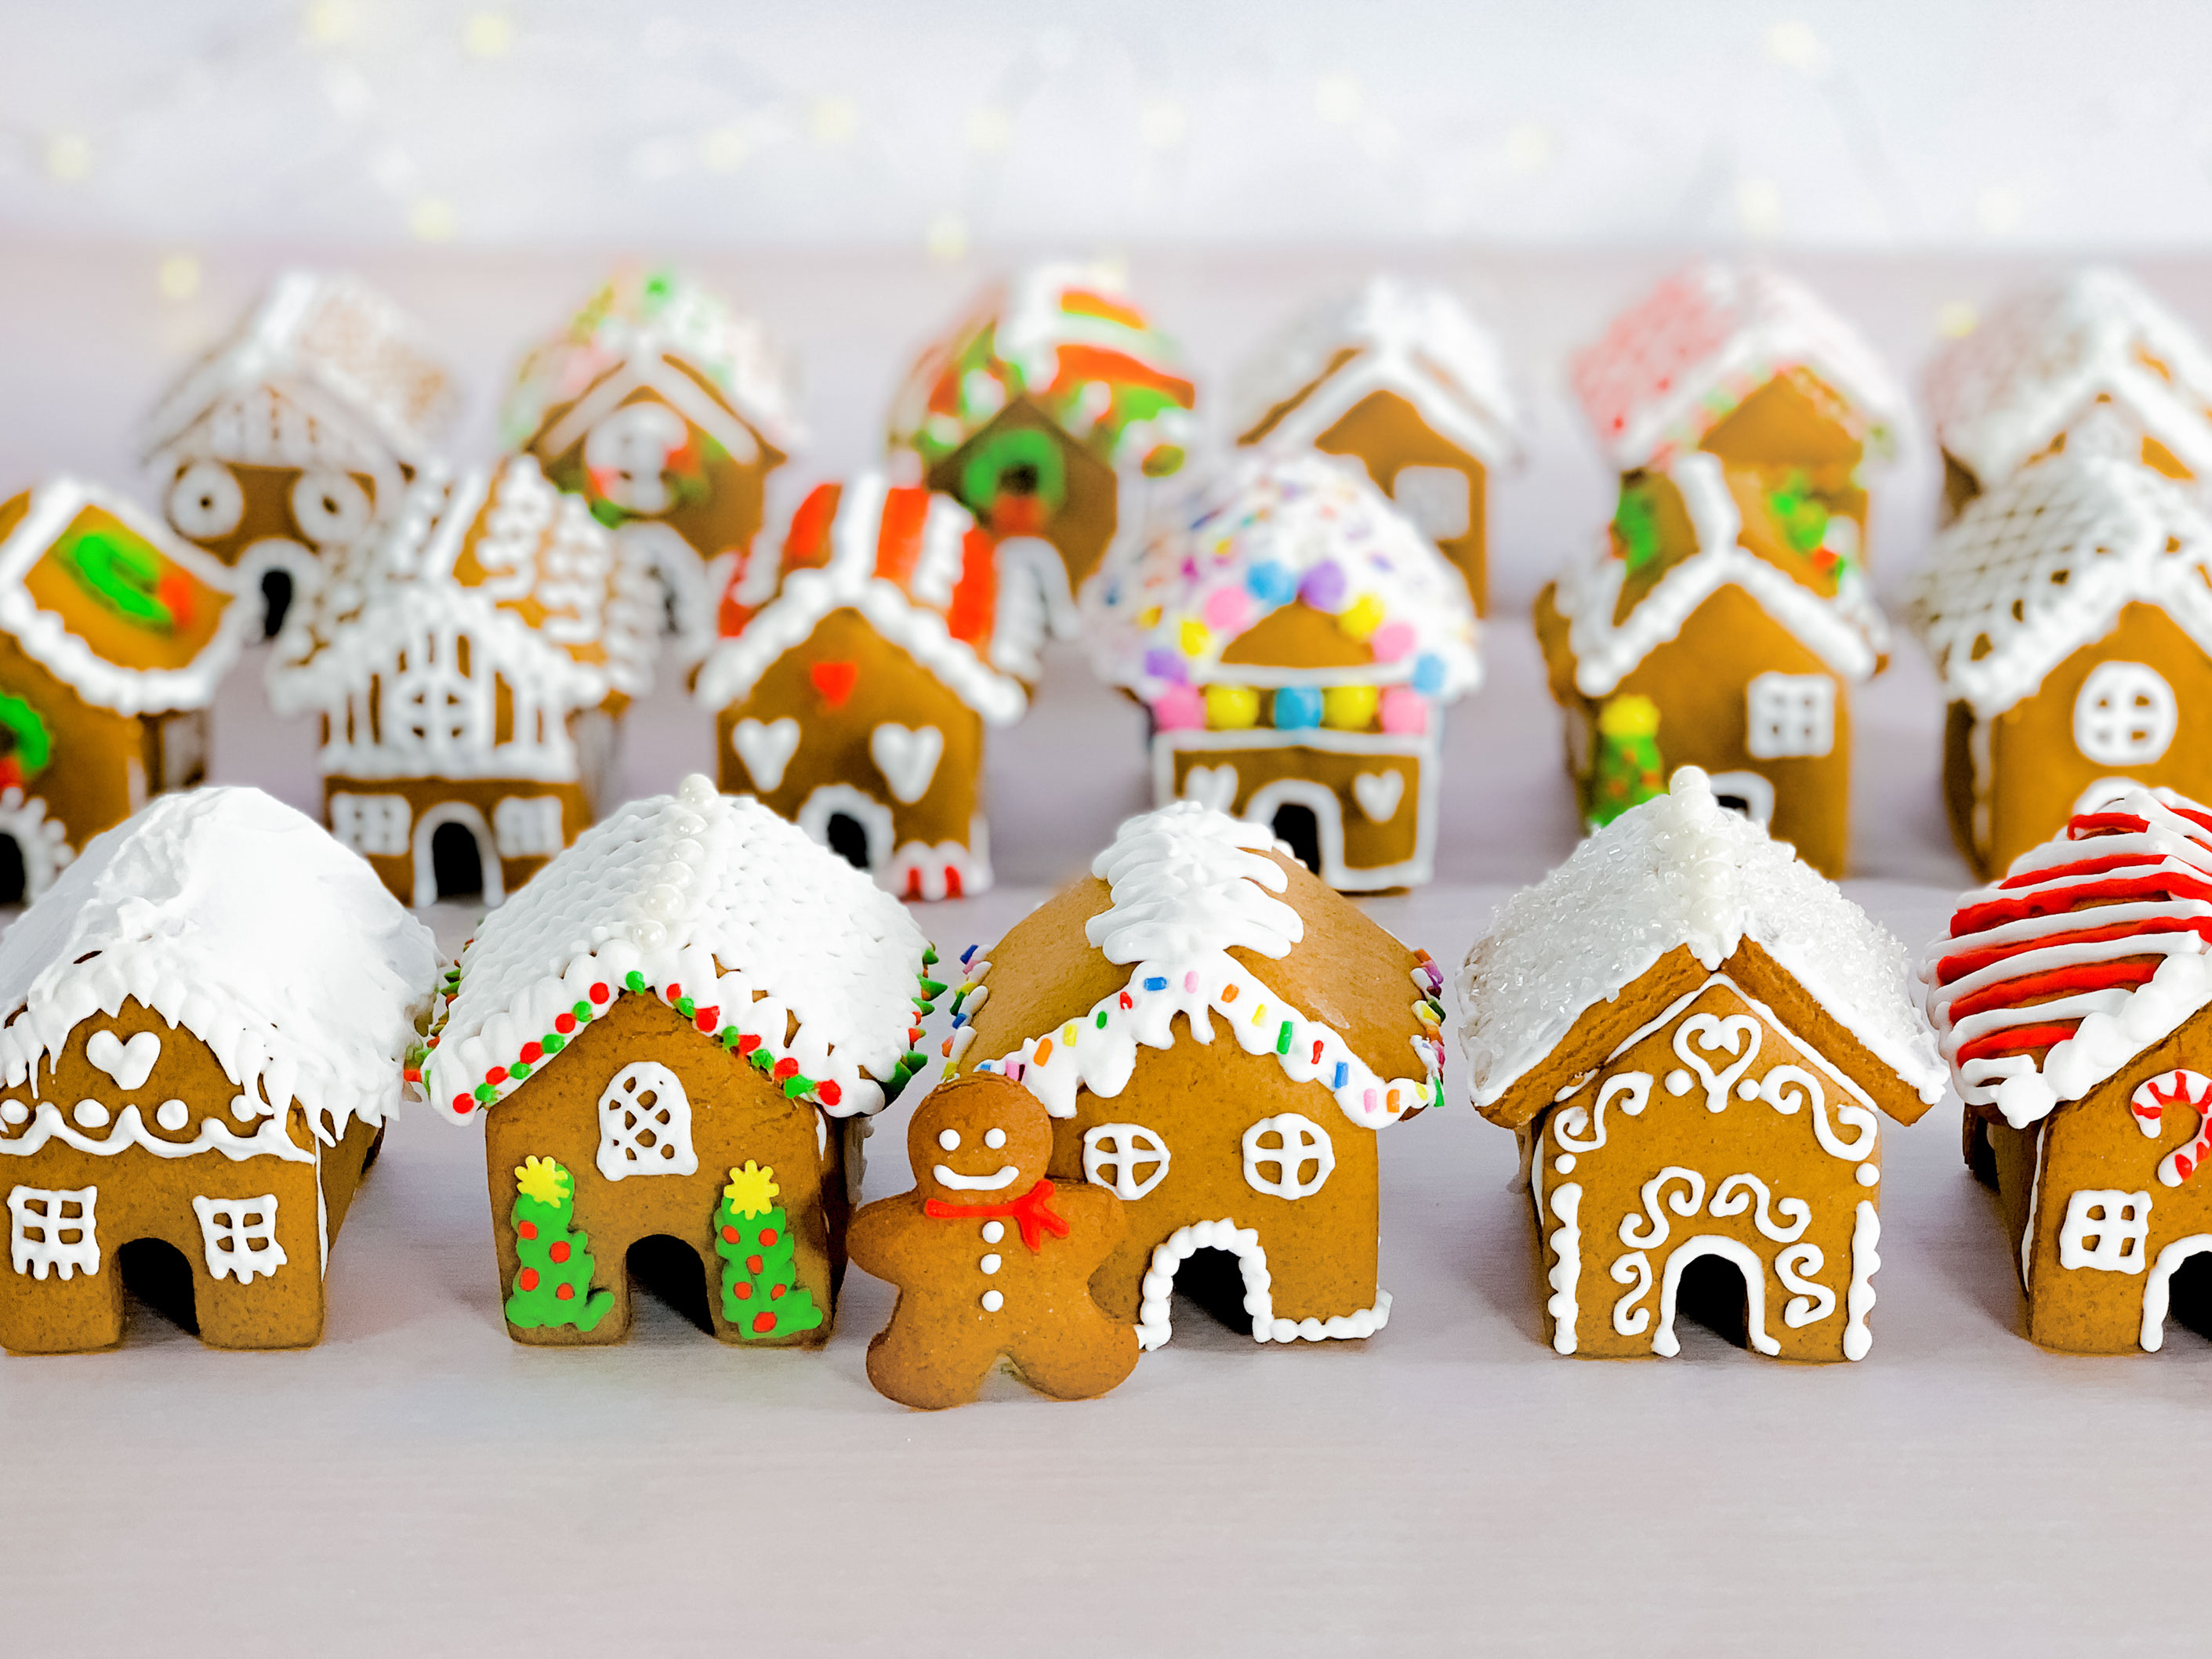 a group of mini gingerbread houses after they have been decorated